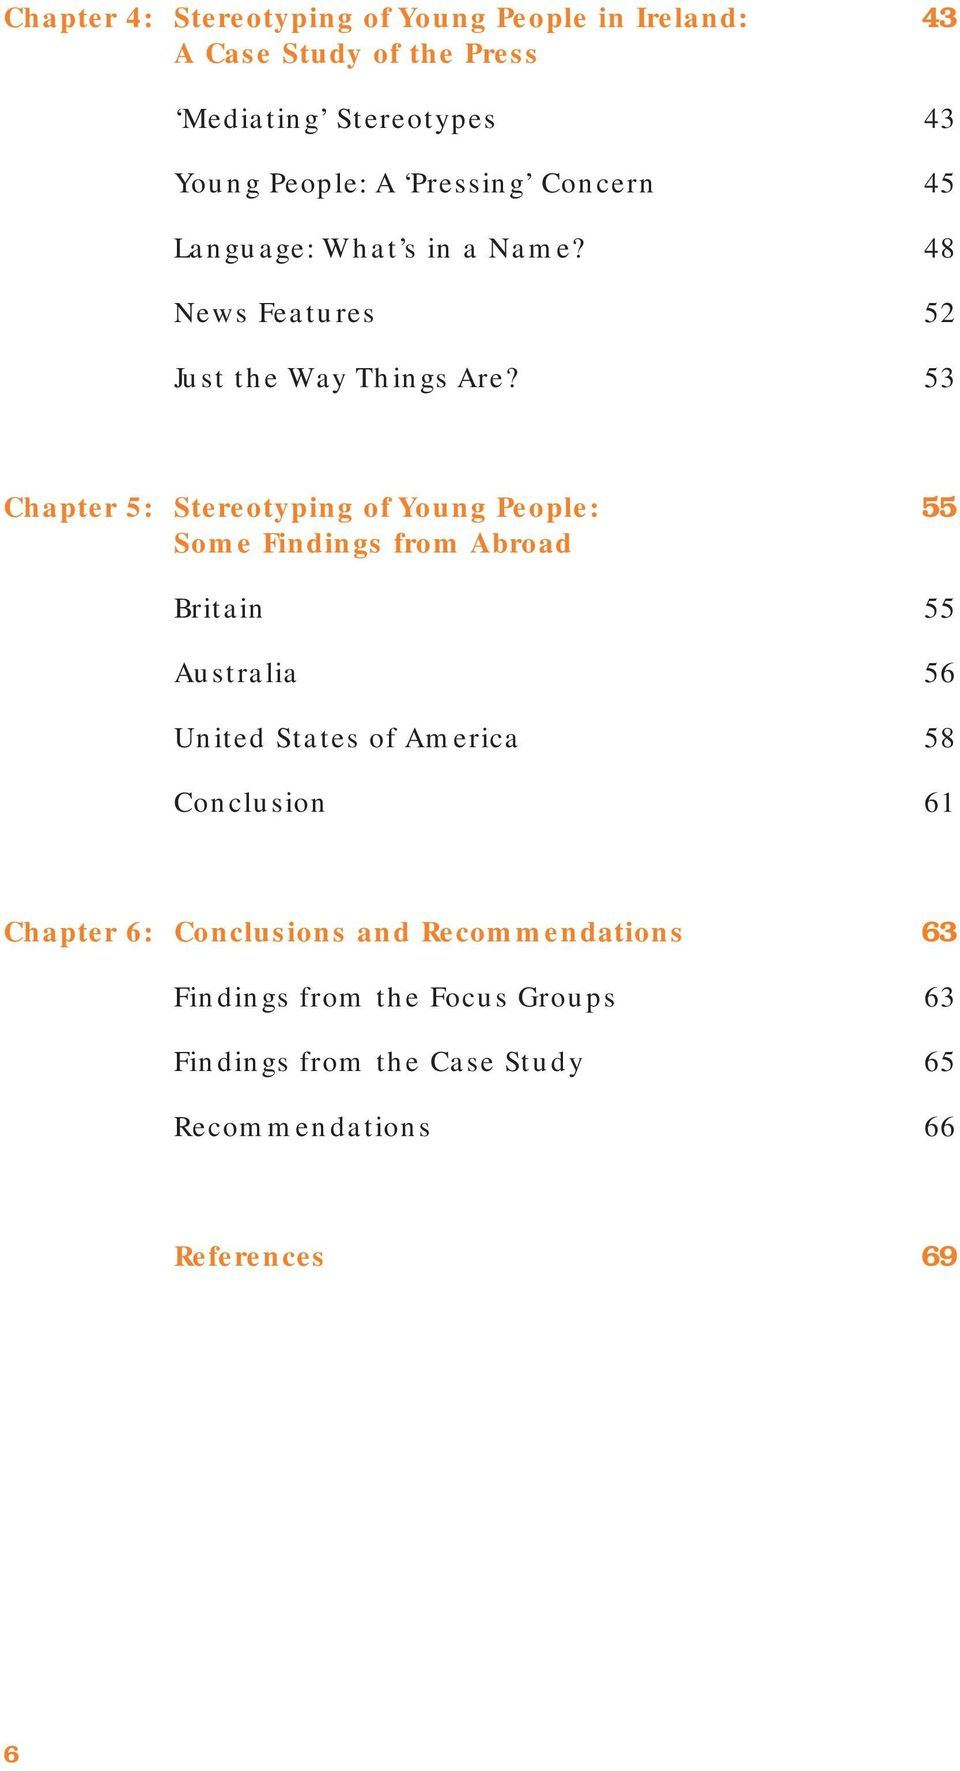 53 Chapter 5: Stereotyping of Young People: 55 Some Findings from Abroad Britain 55 Australia 56 United States of America 58